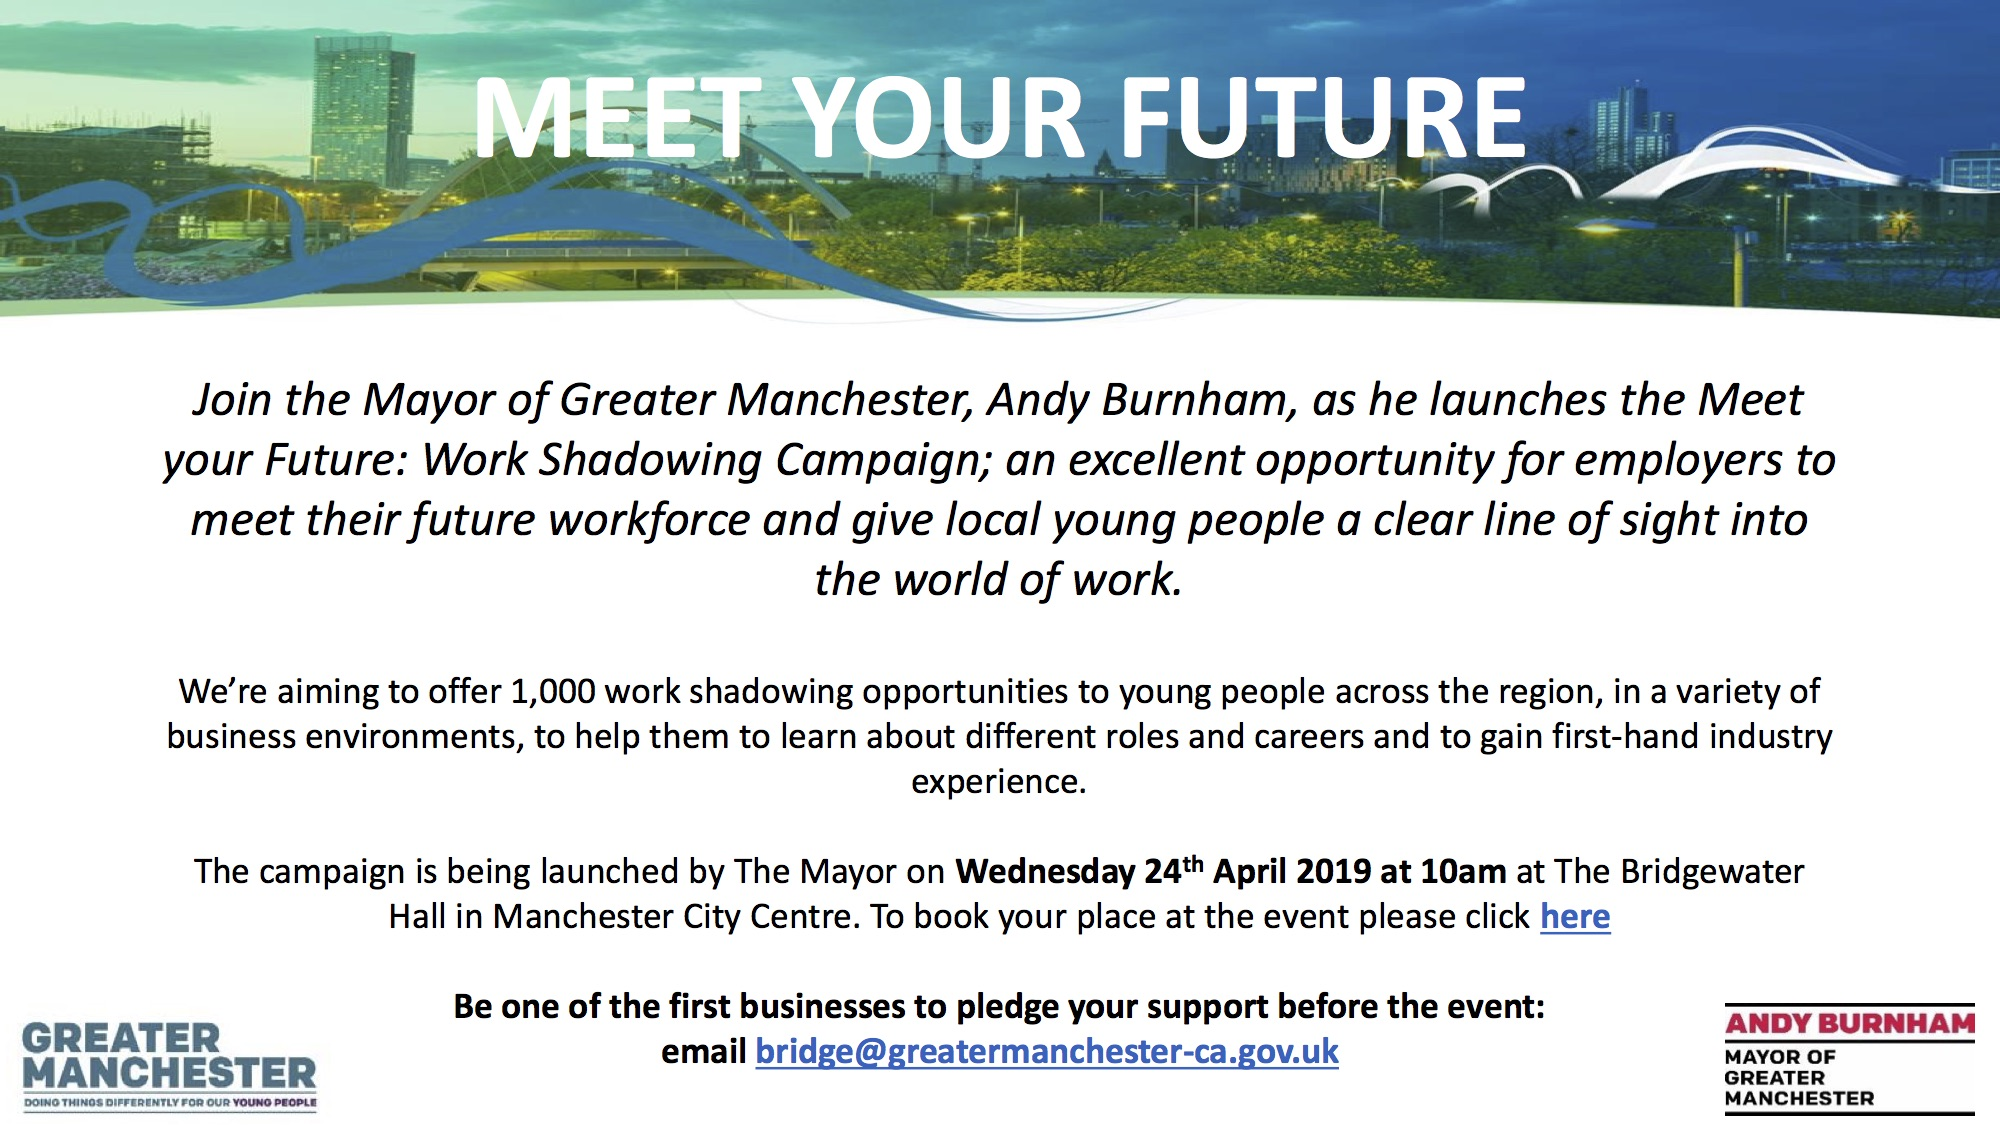 """""""An excellent opportunity for employers to meet their future workforce"""""""